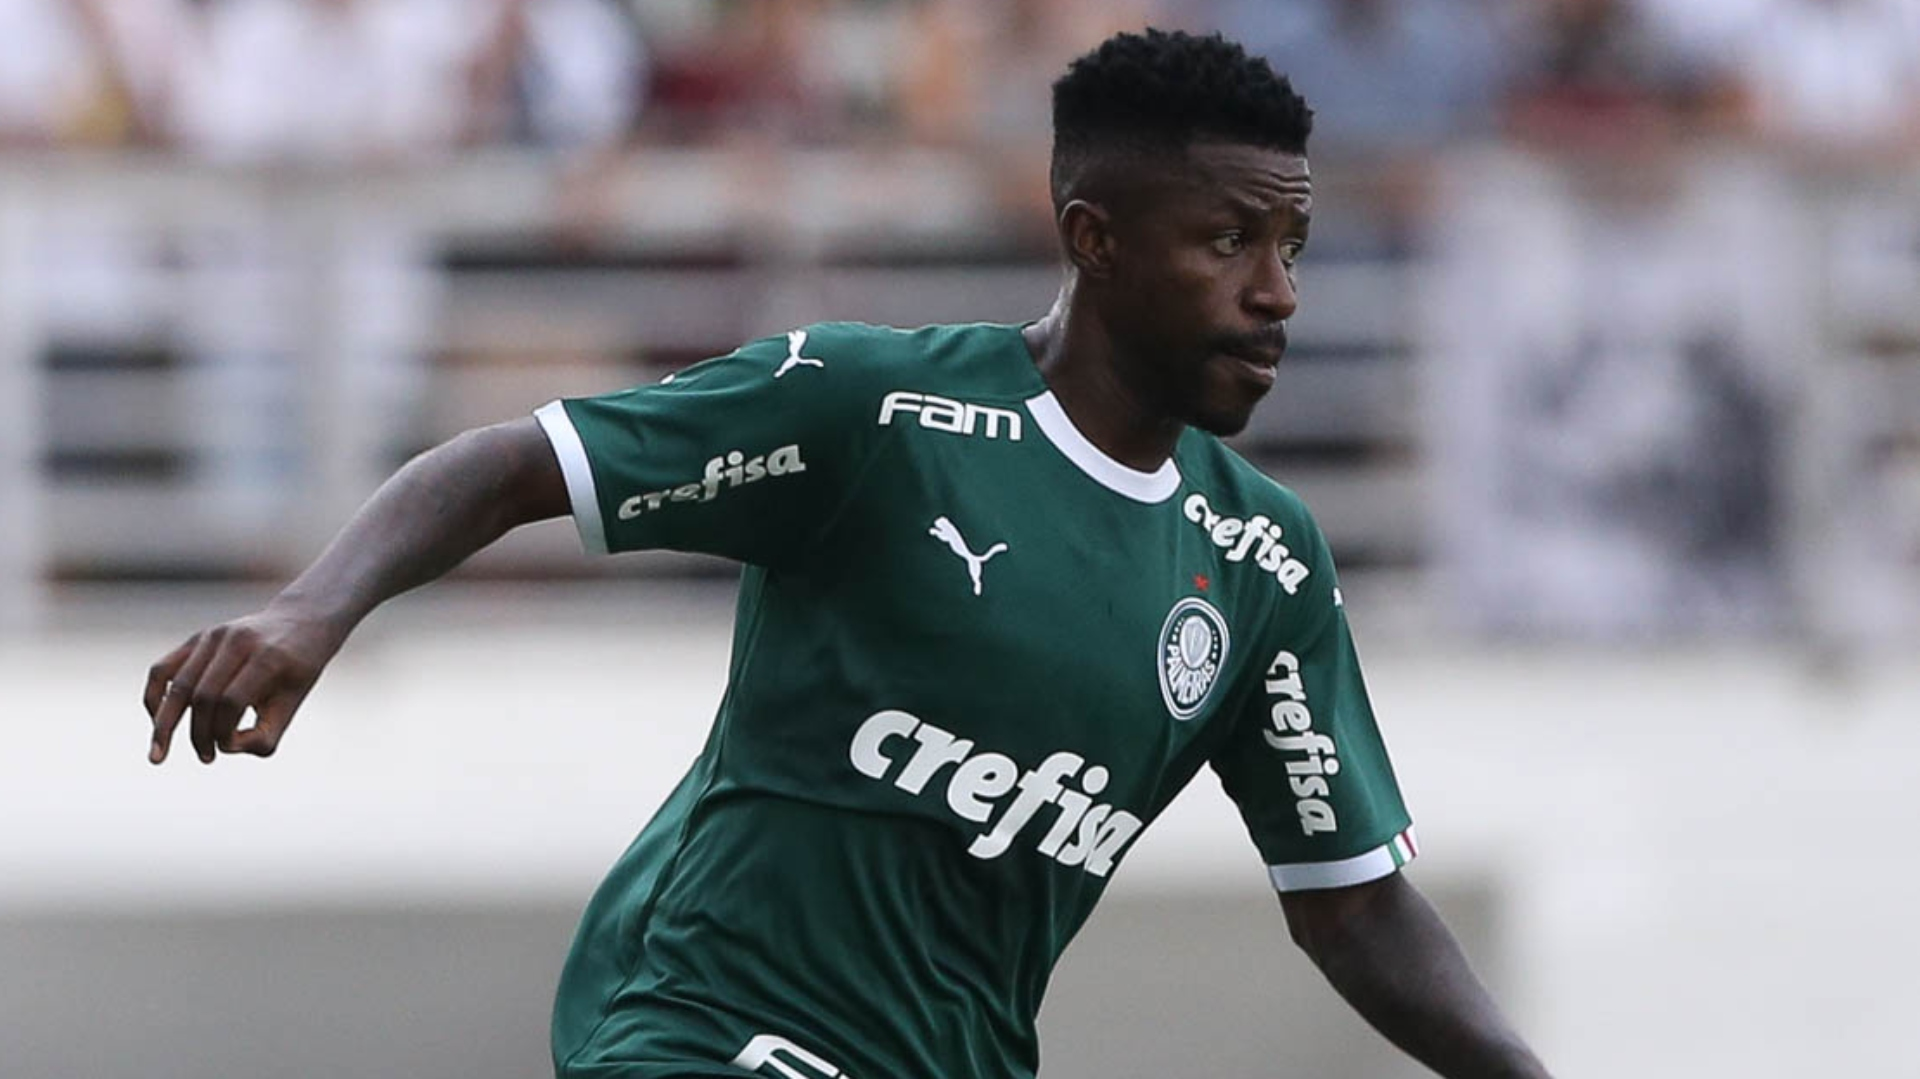 Ex-Chelsea star Ramires considering retirement after leaving Palmeiras